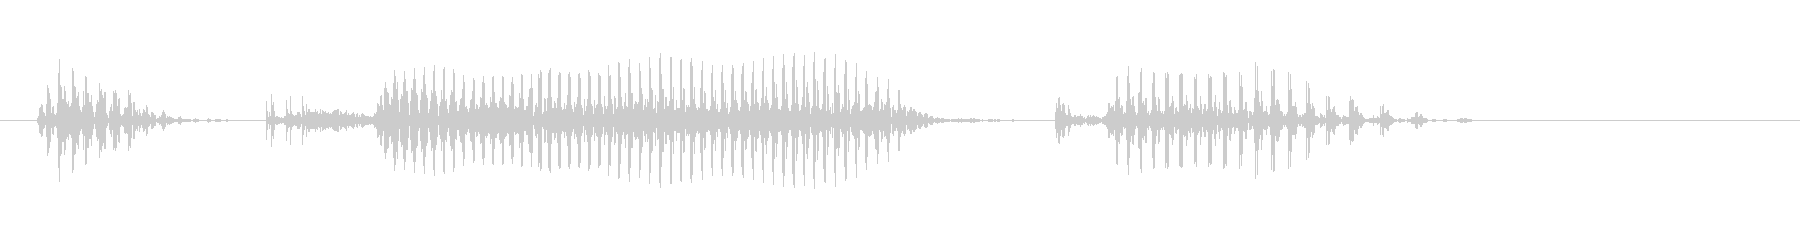 Okinawa Prefecture's unreproduced waveform